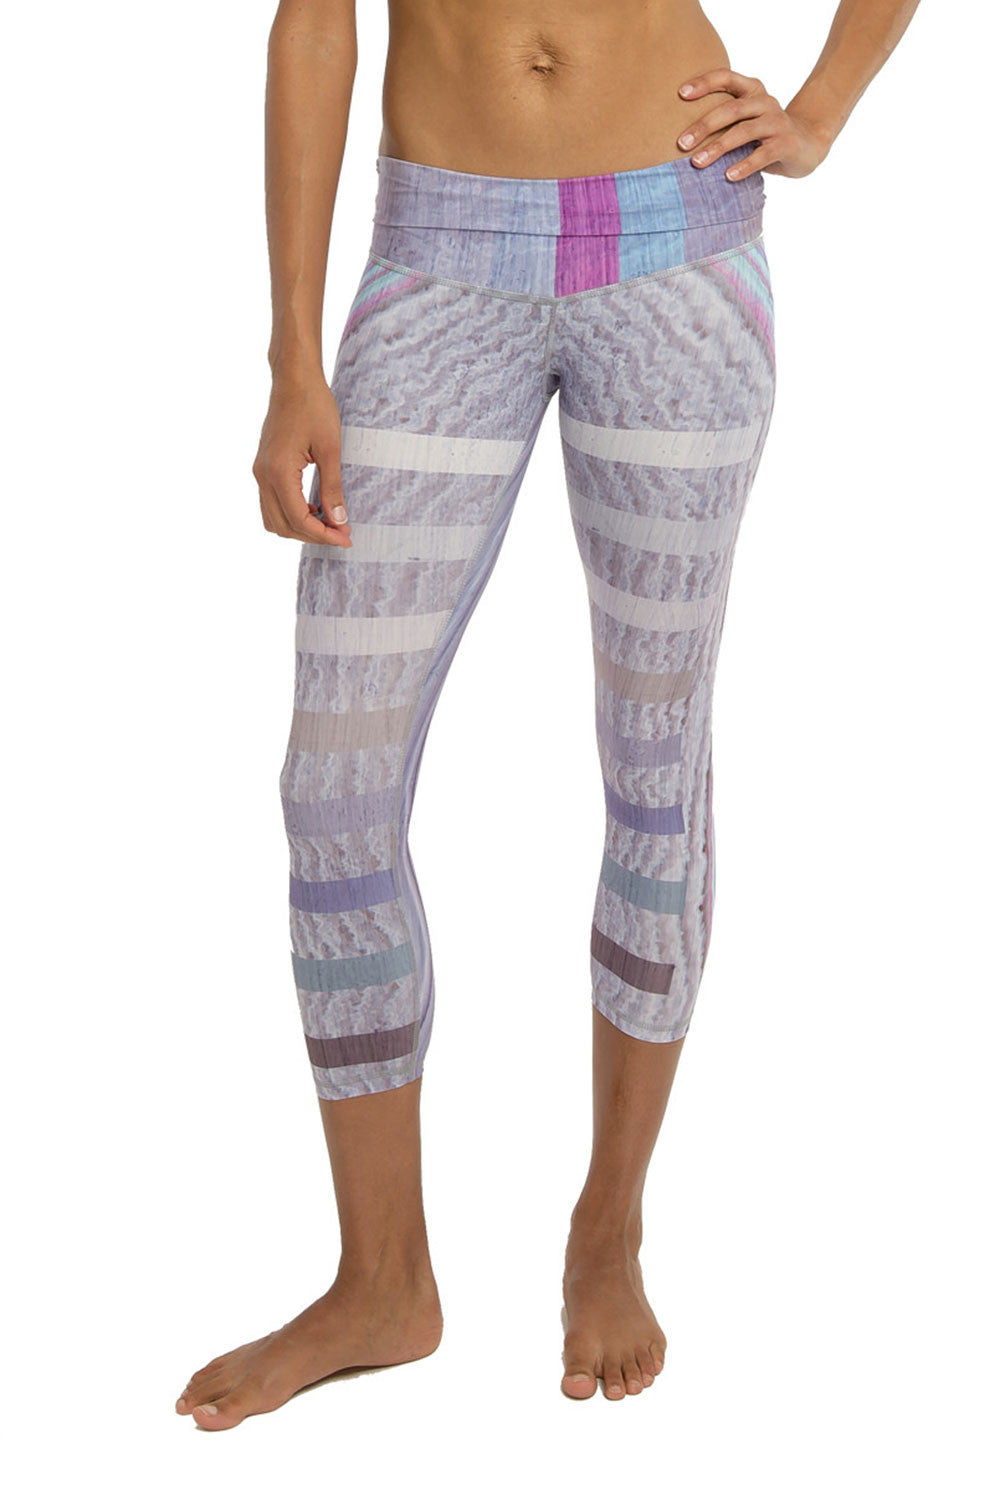 Niyama Sol Zulu Beachcomber Legging - Sculptique